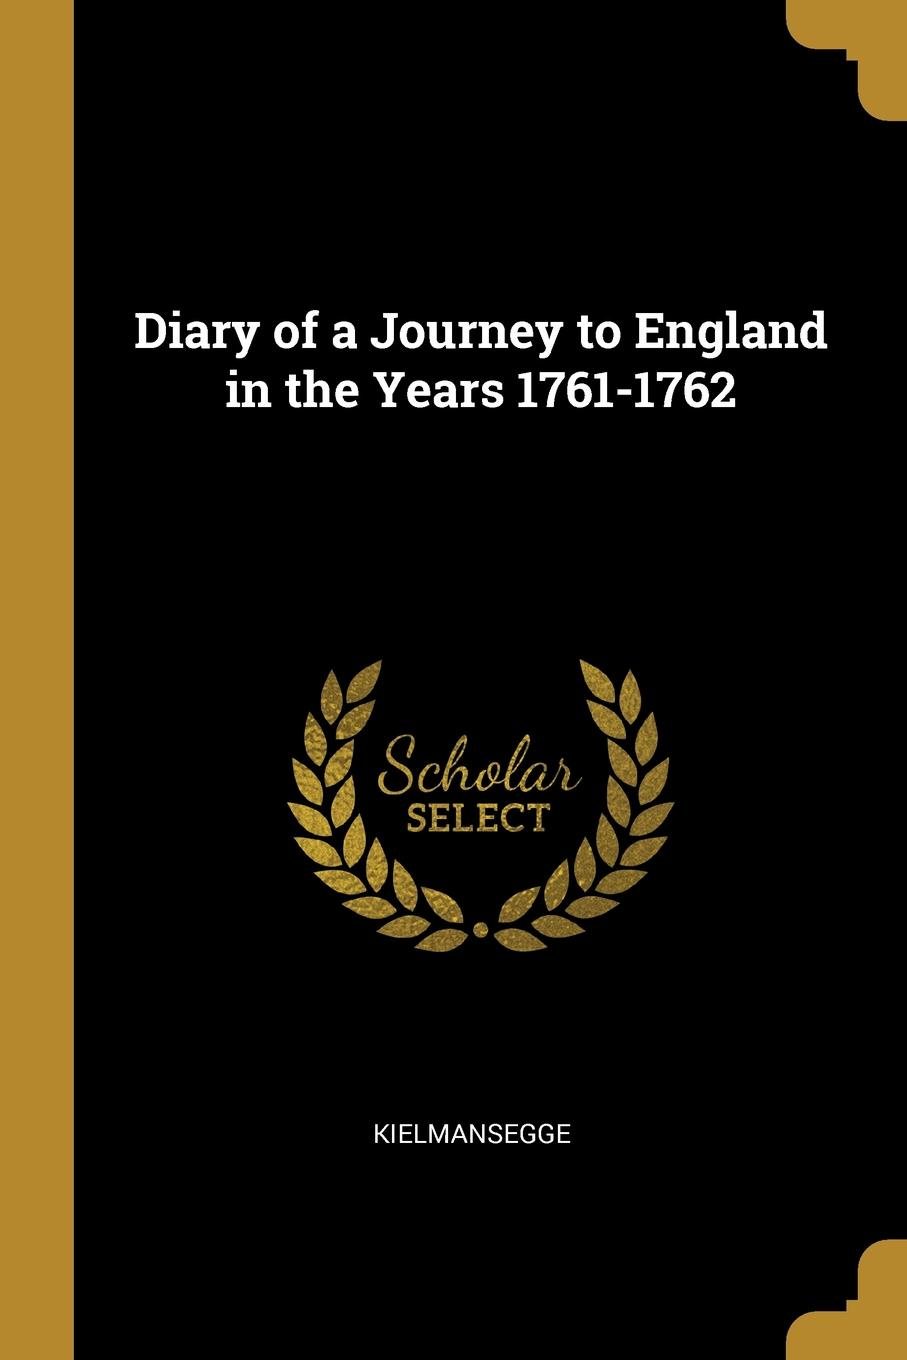 Kielmansegge. Diary of a Journey to England in the Years 1761-1762